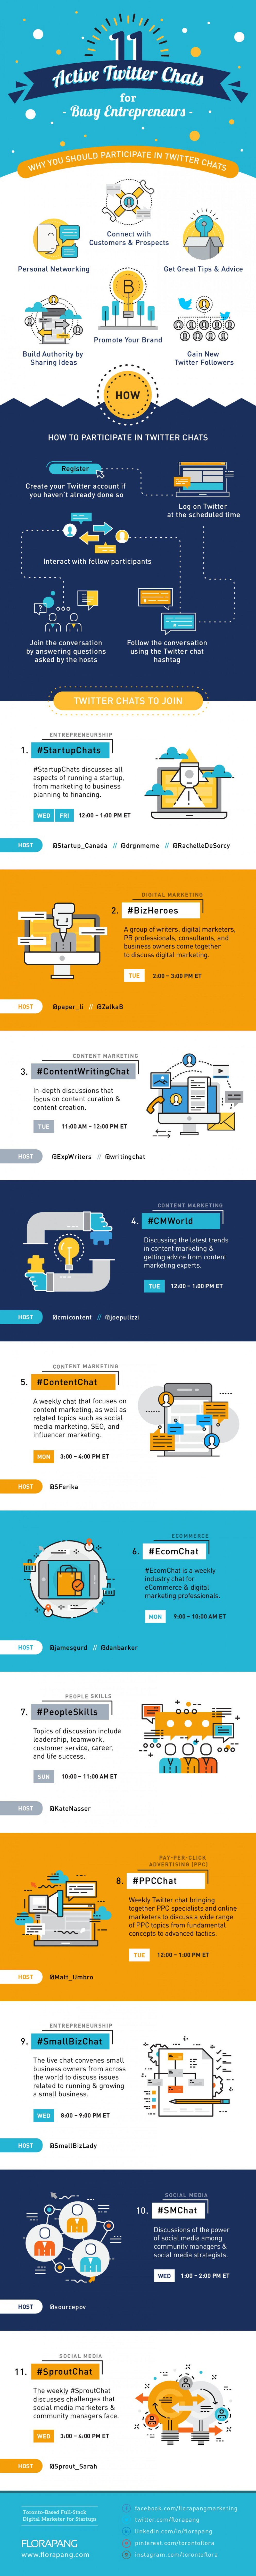 11 Active Twitter Chats For Busy Entrepreneurs Infographic